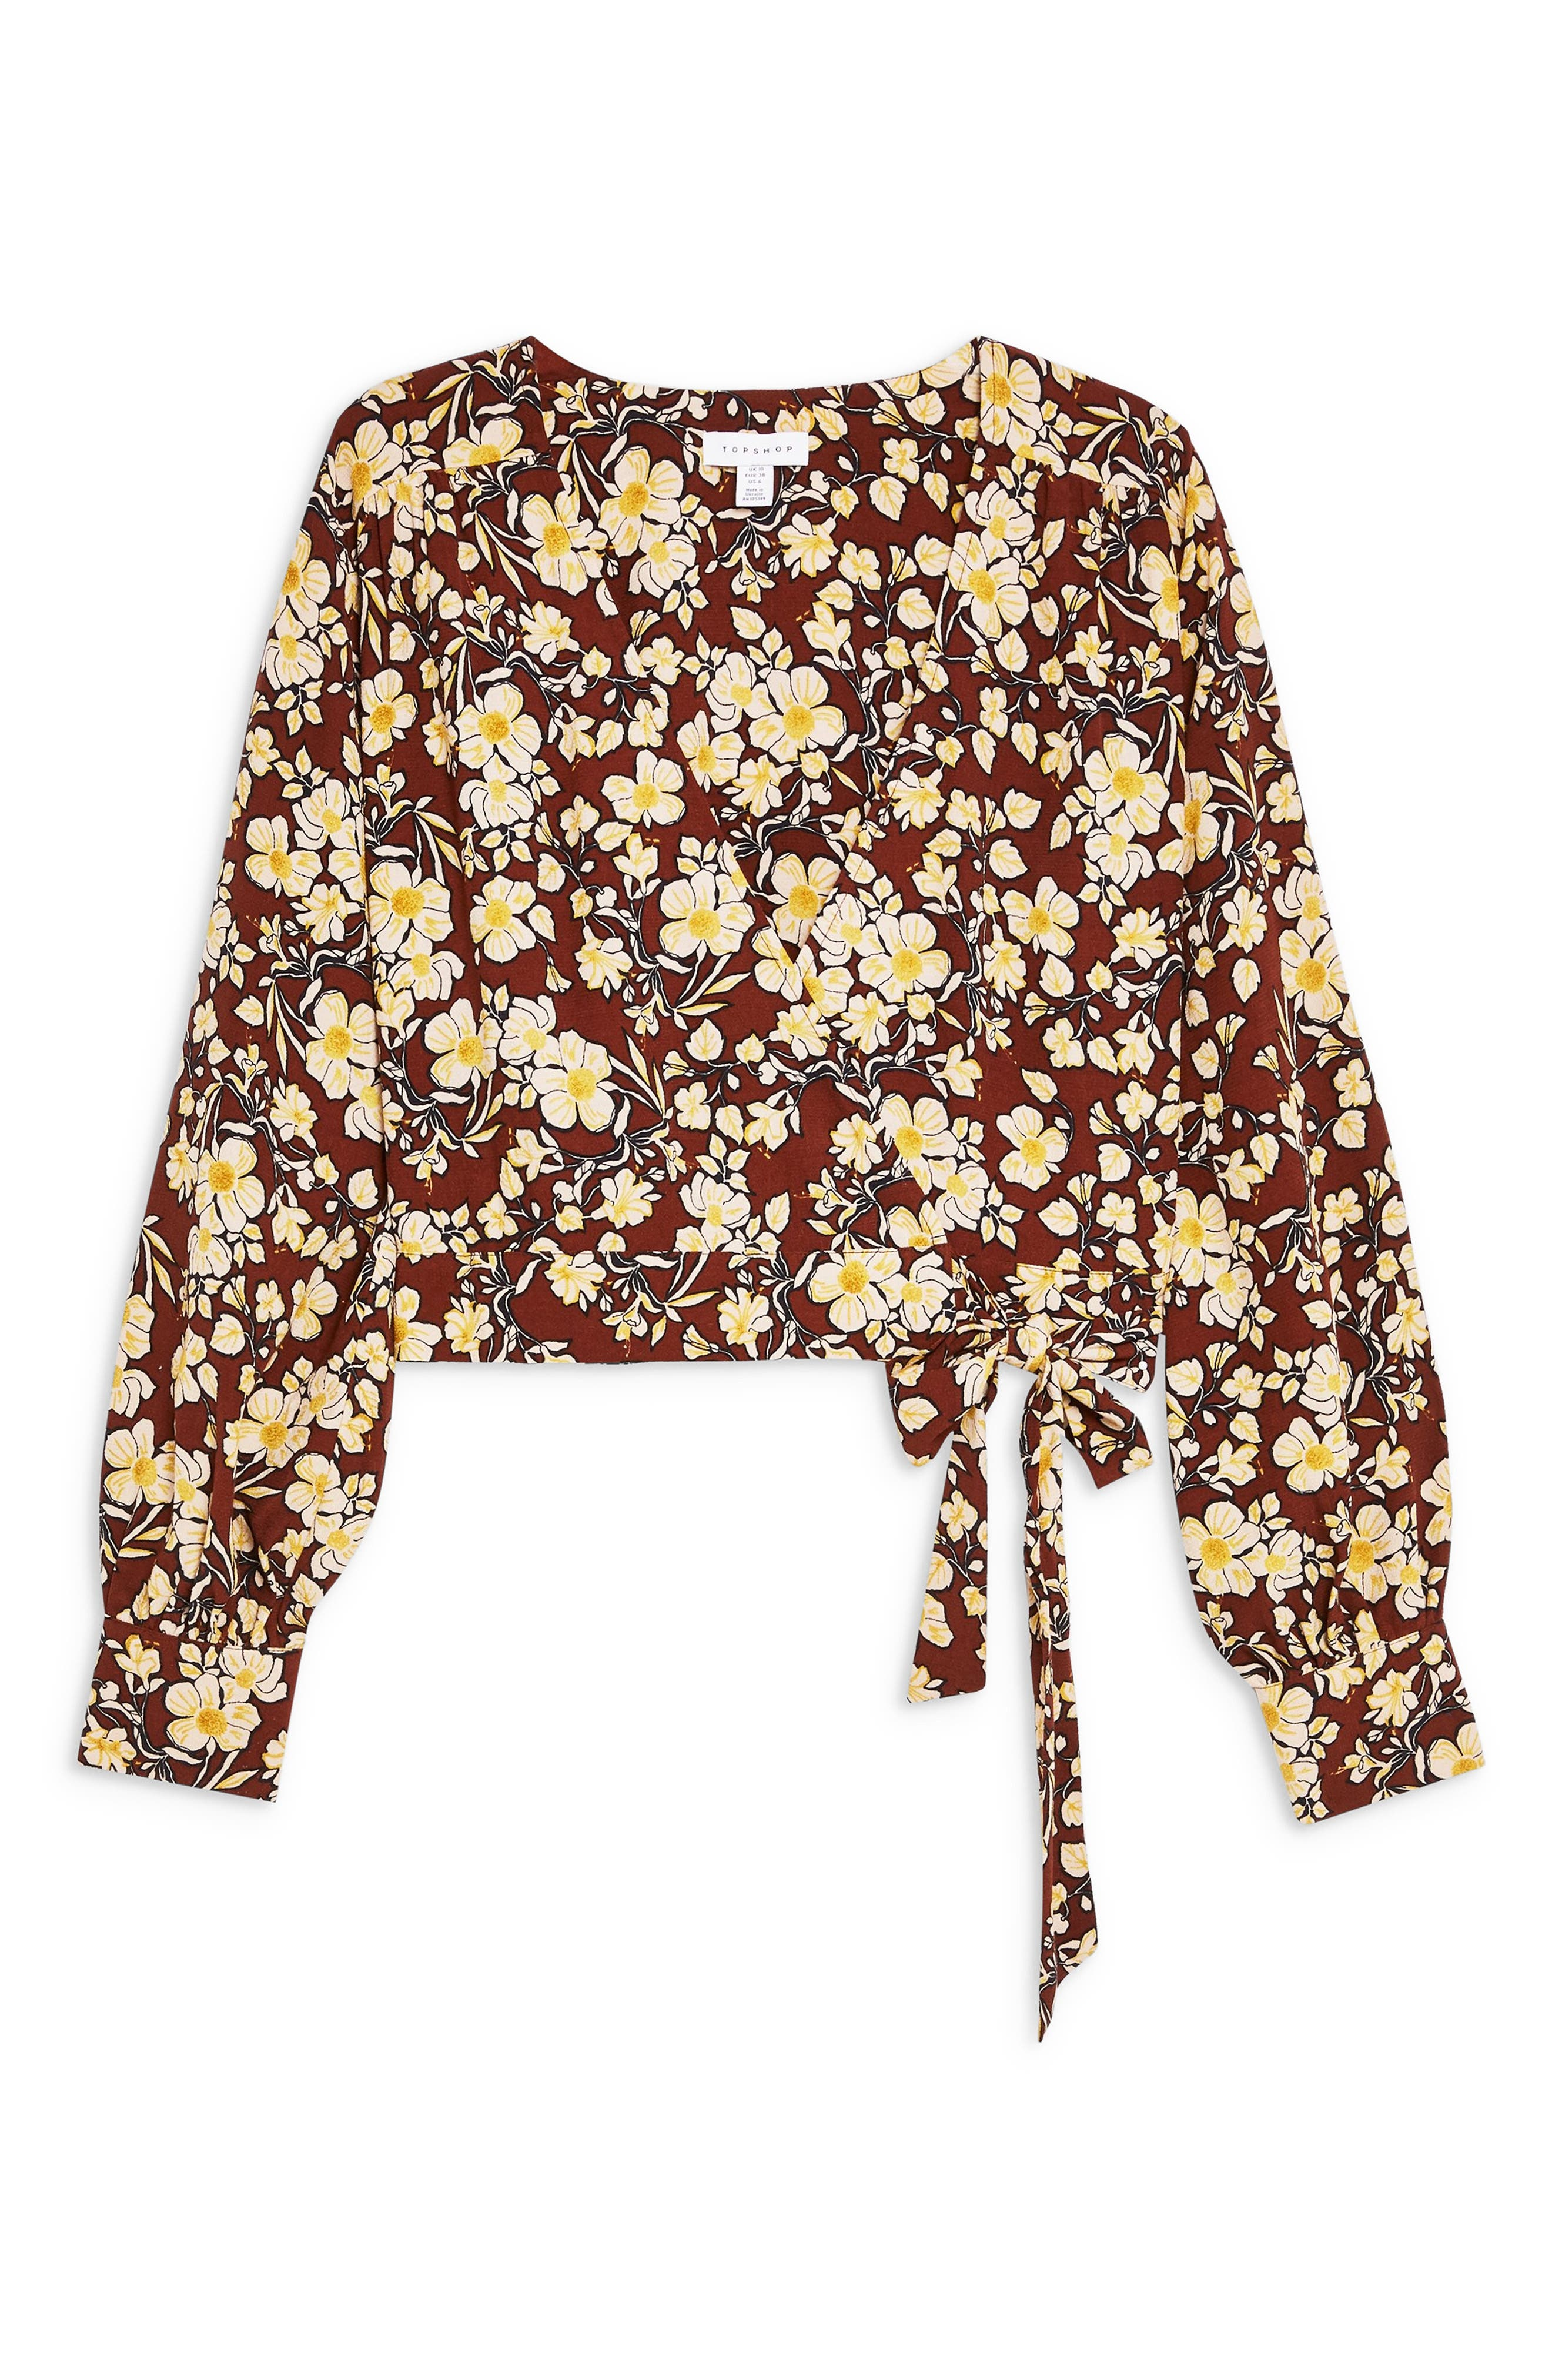 TOPSHOP, Floral Wrap Crop Blouse, Alternate thumbnail 4, color, BROWN MULTI